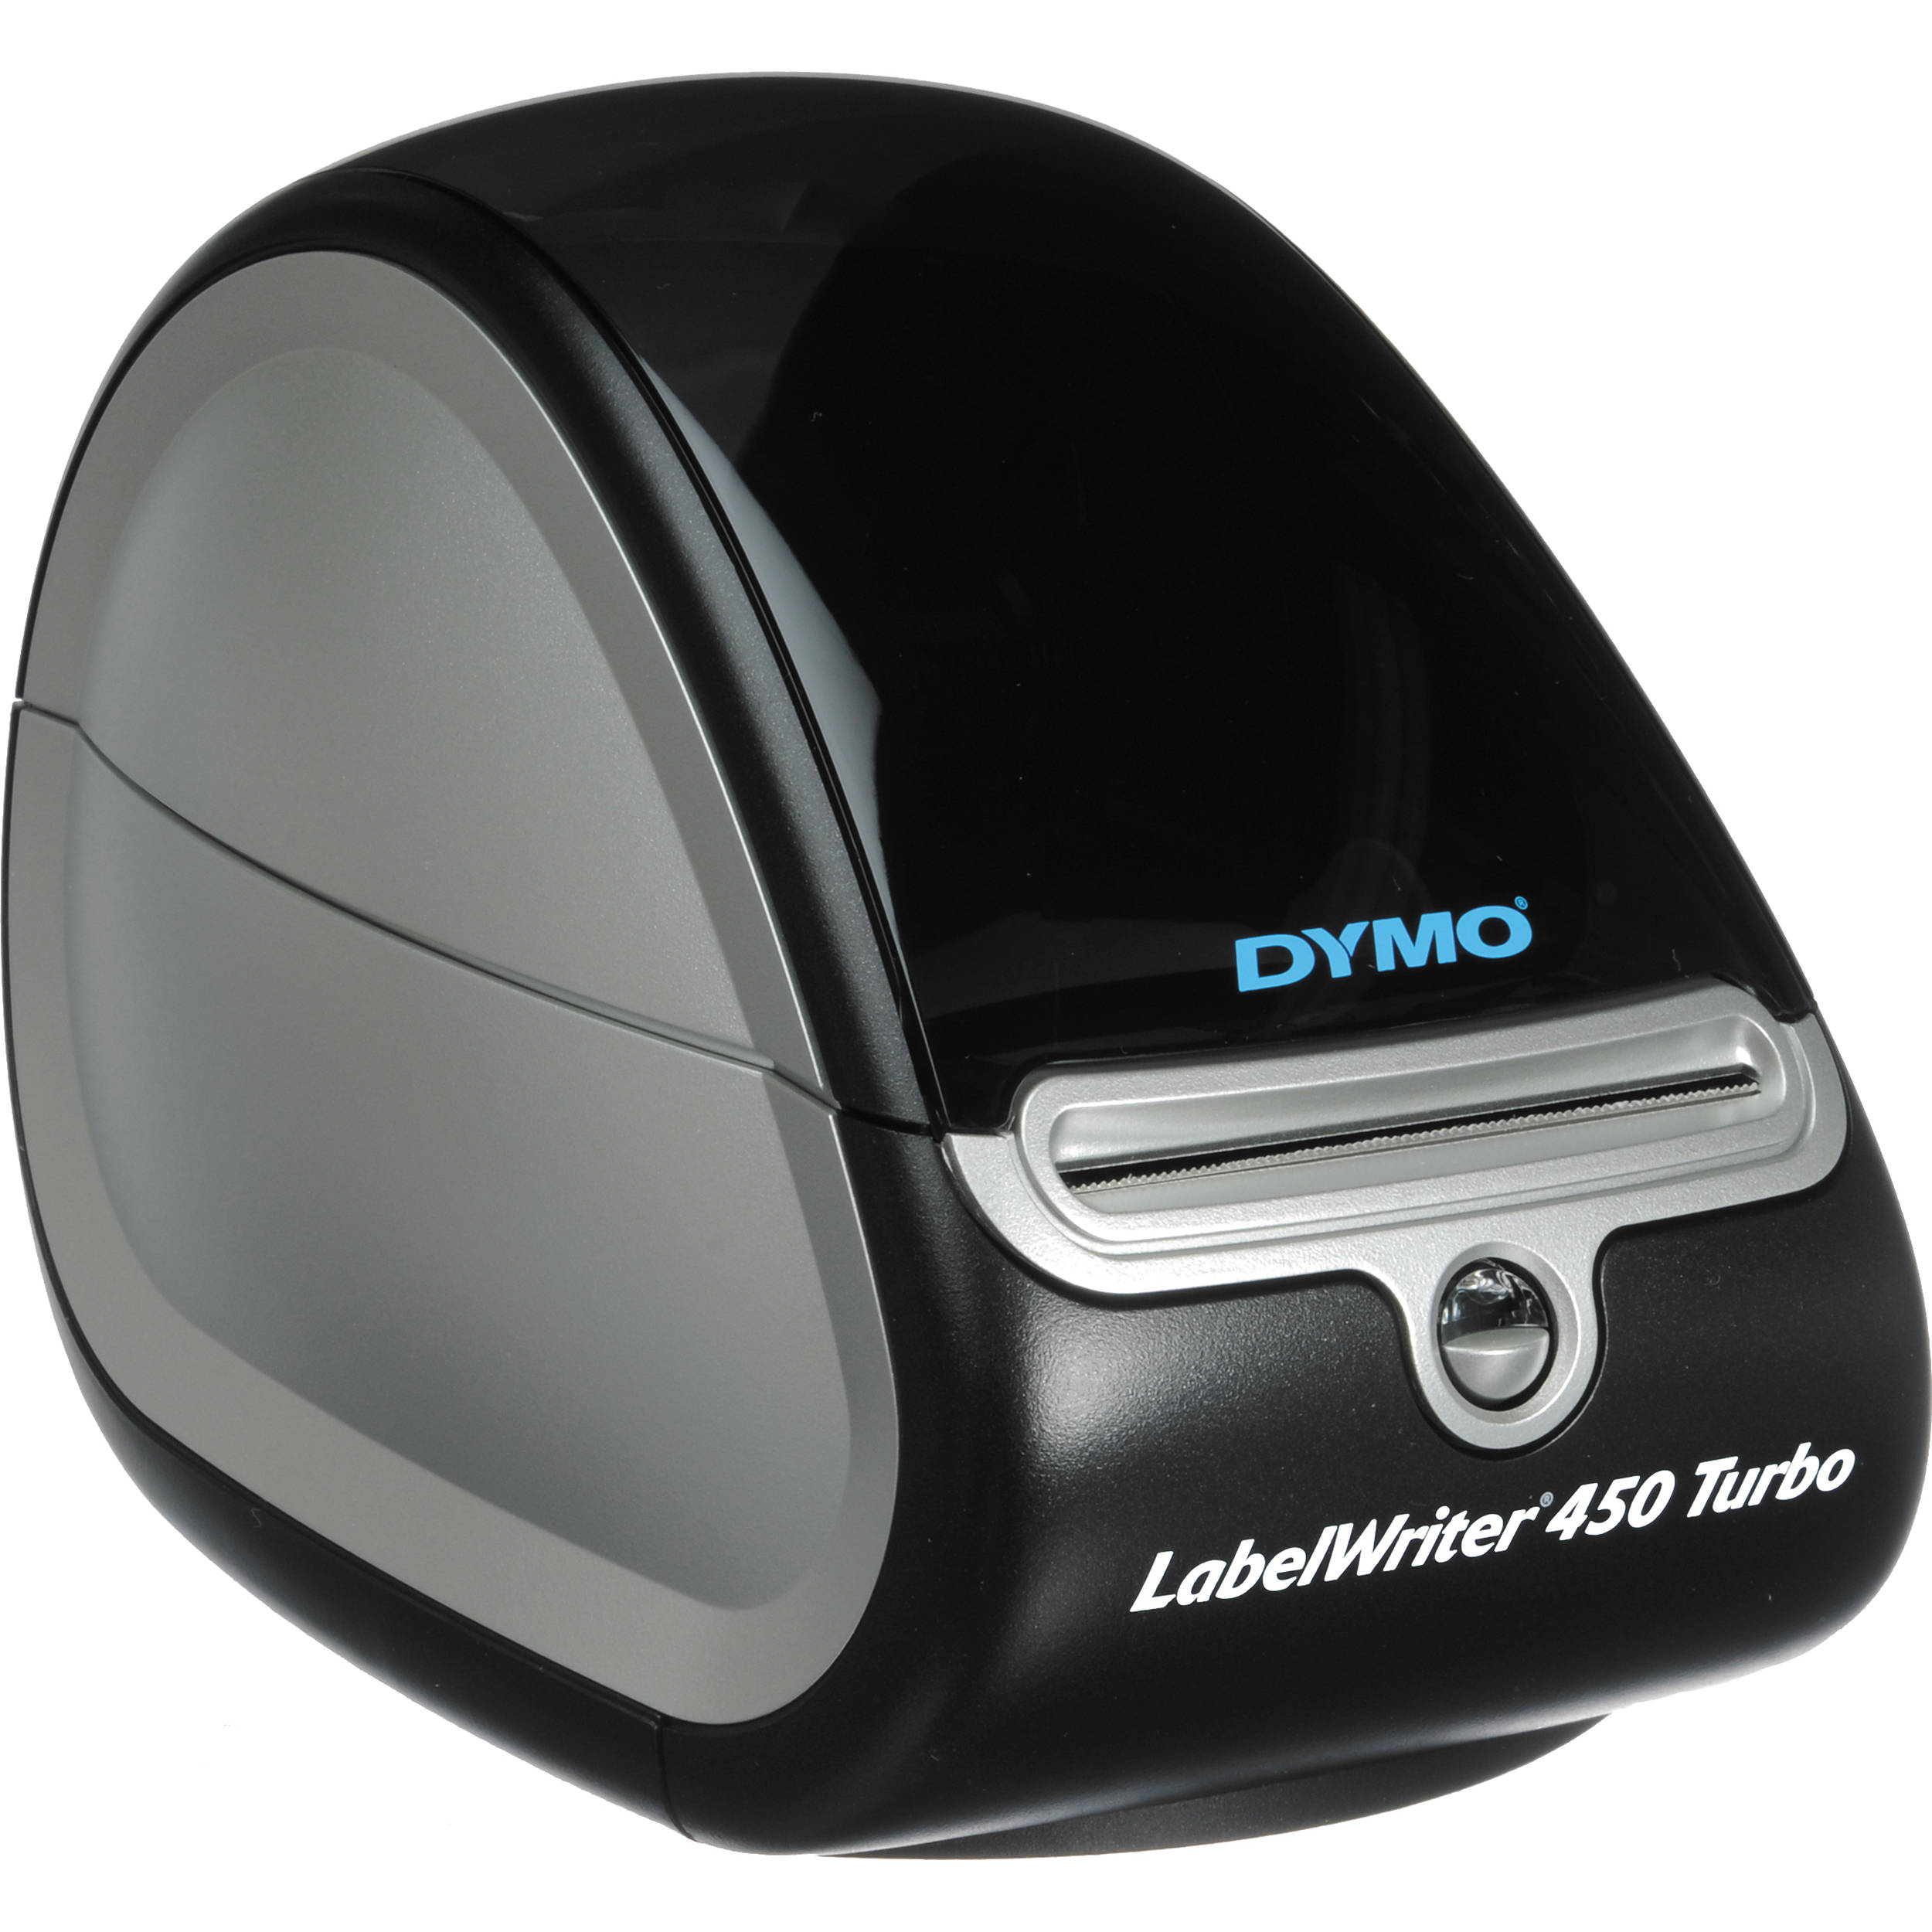 Dymo Label Printer 400 Driver Windows 10